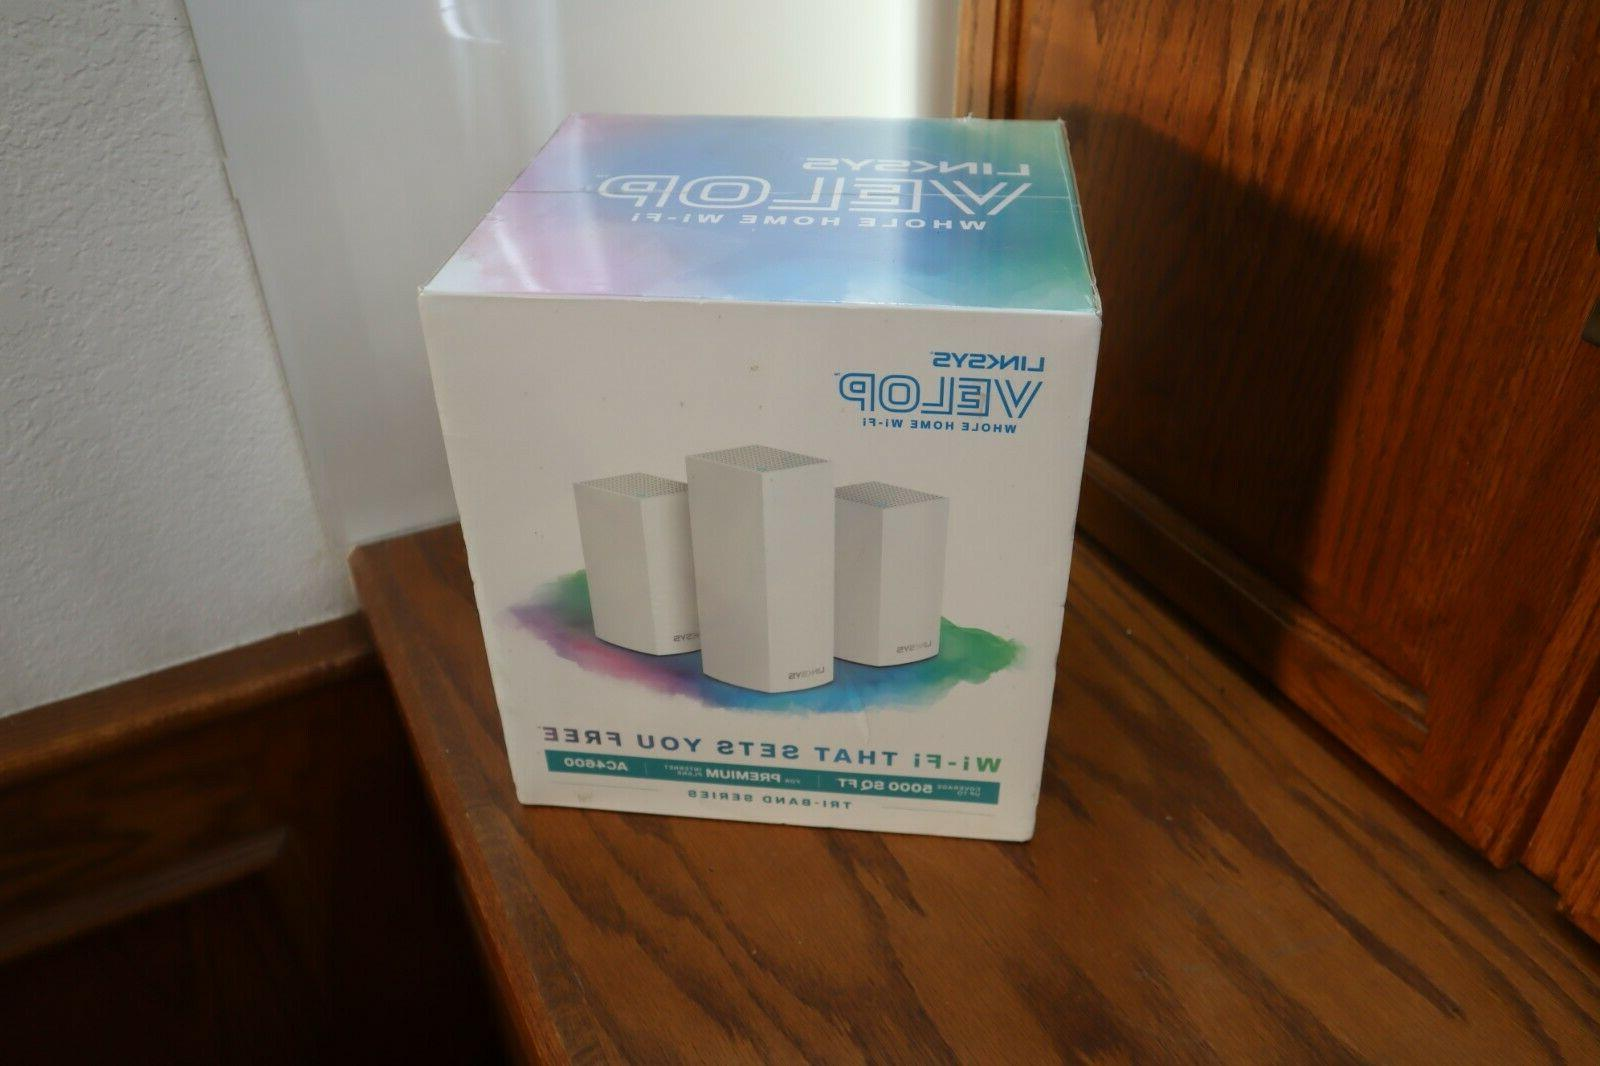 velop mesh network router wifi ac4600 whole